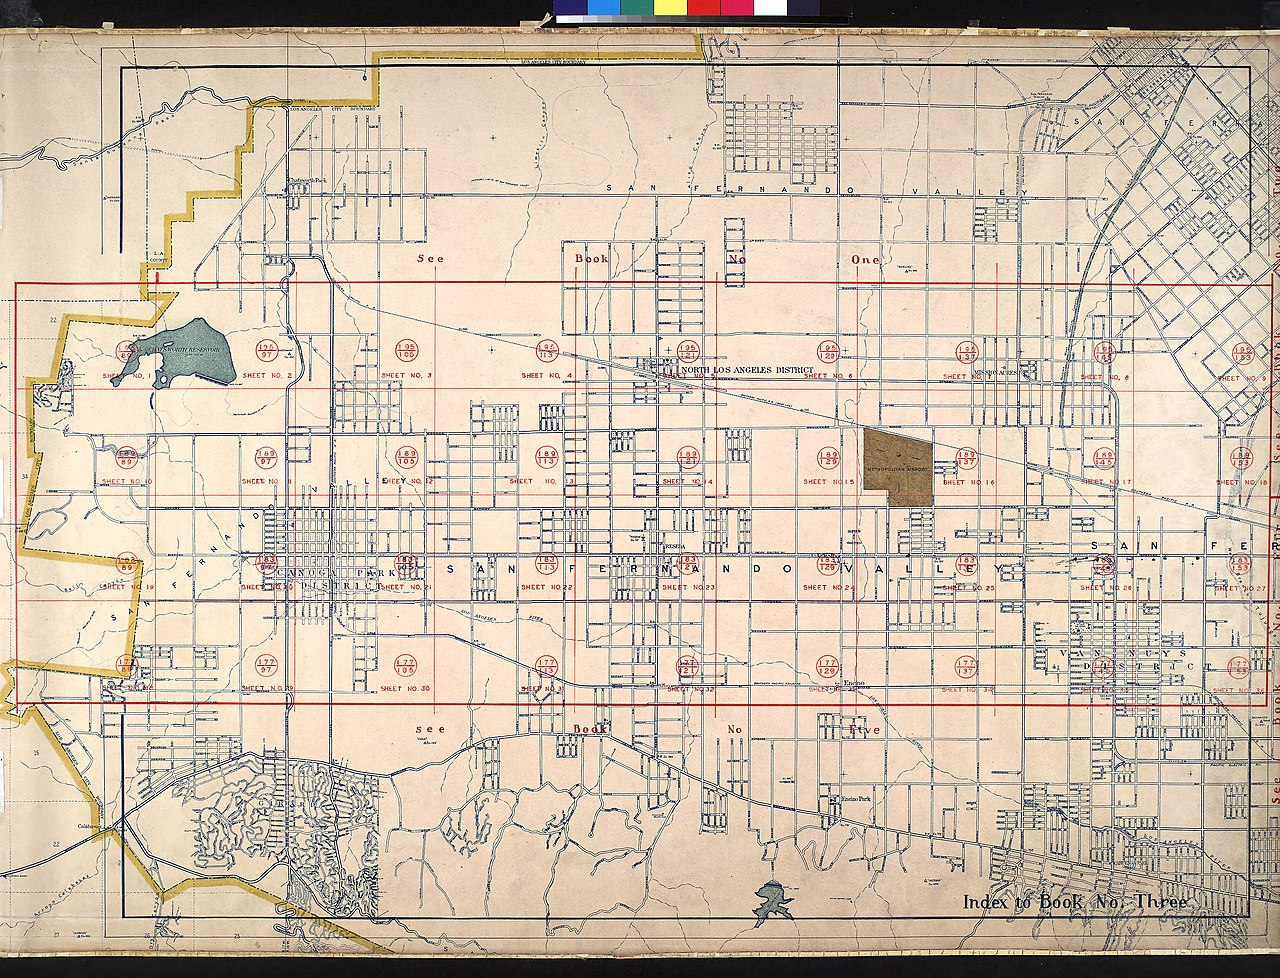 File:WPA Land use survey map for the City of Los Angeles